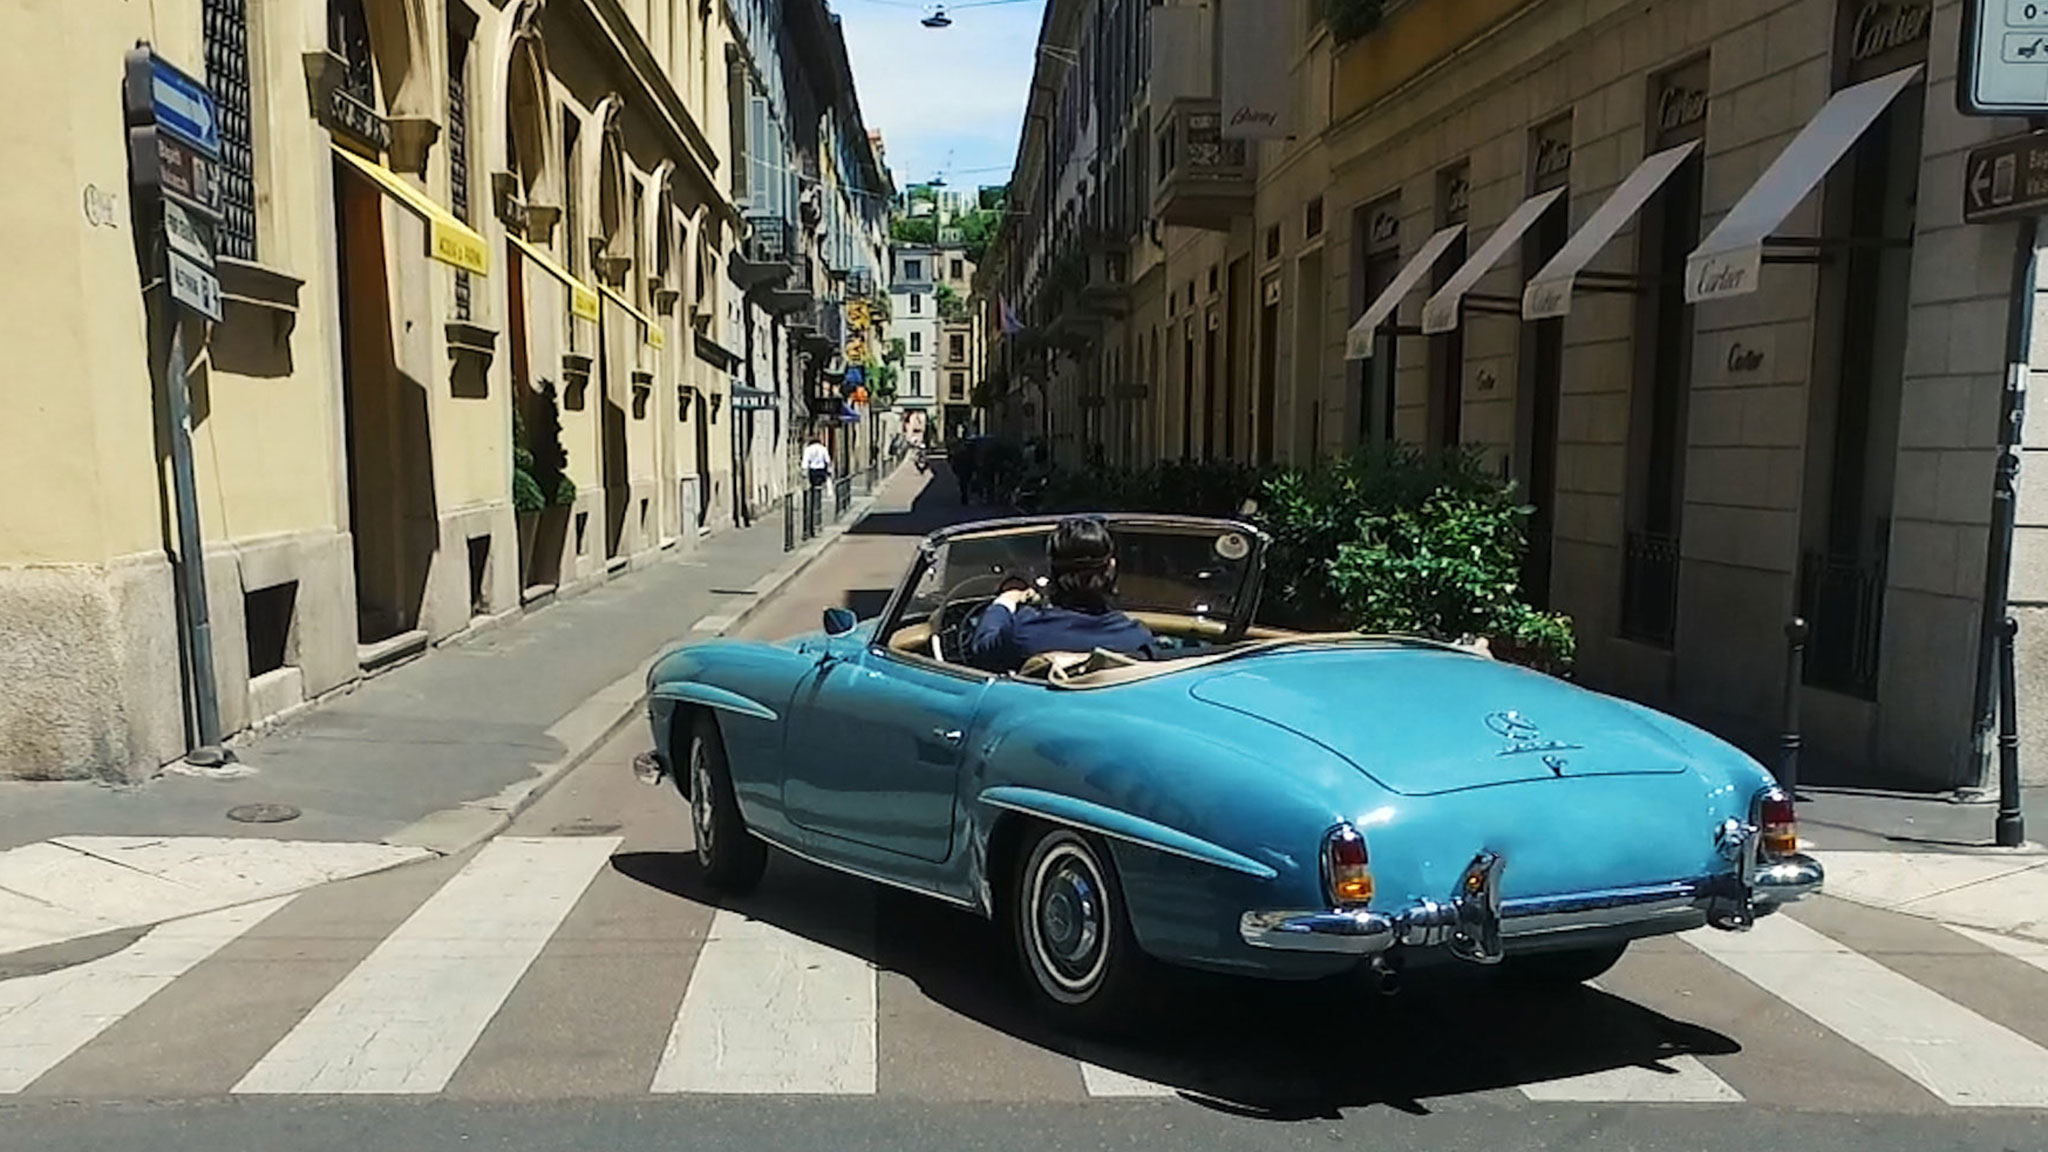 Vroom with a view across Italy in a classic car